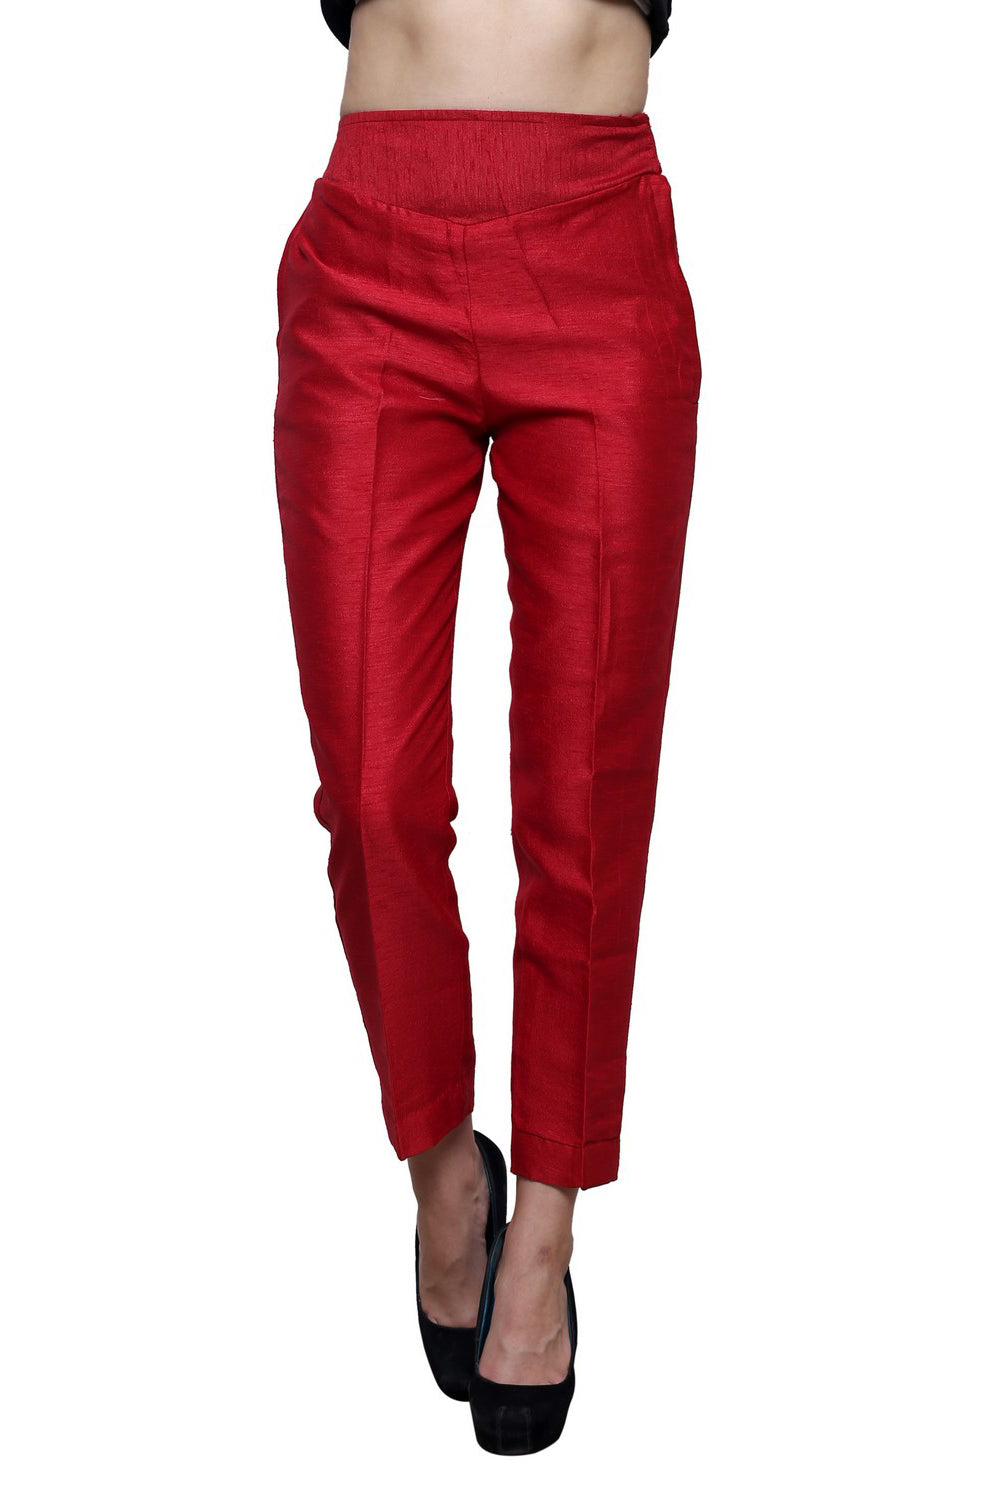 Castle Maroon Tussar Silk Pencil Pant - Castle Lifestyle